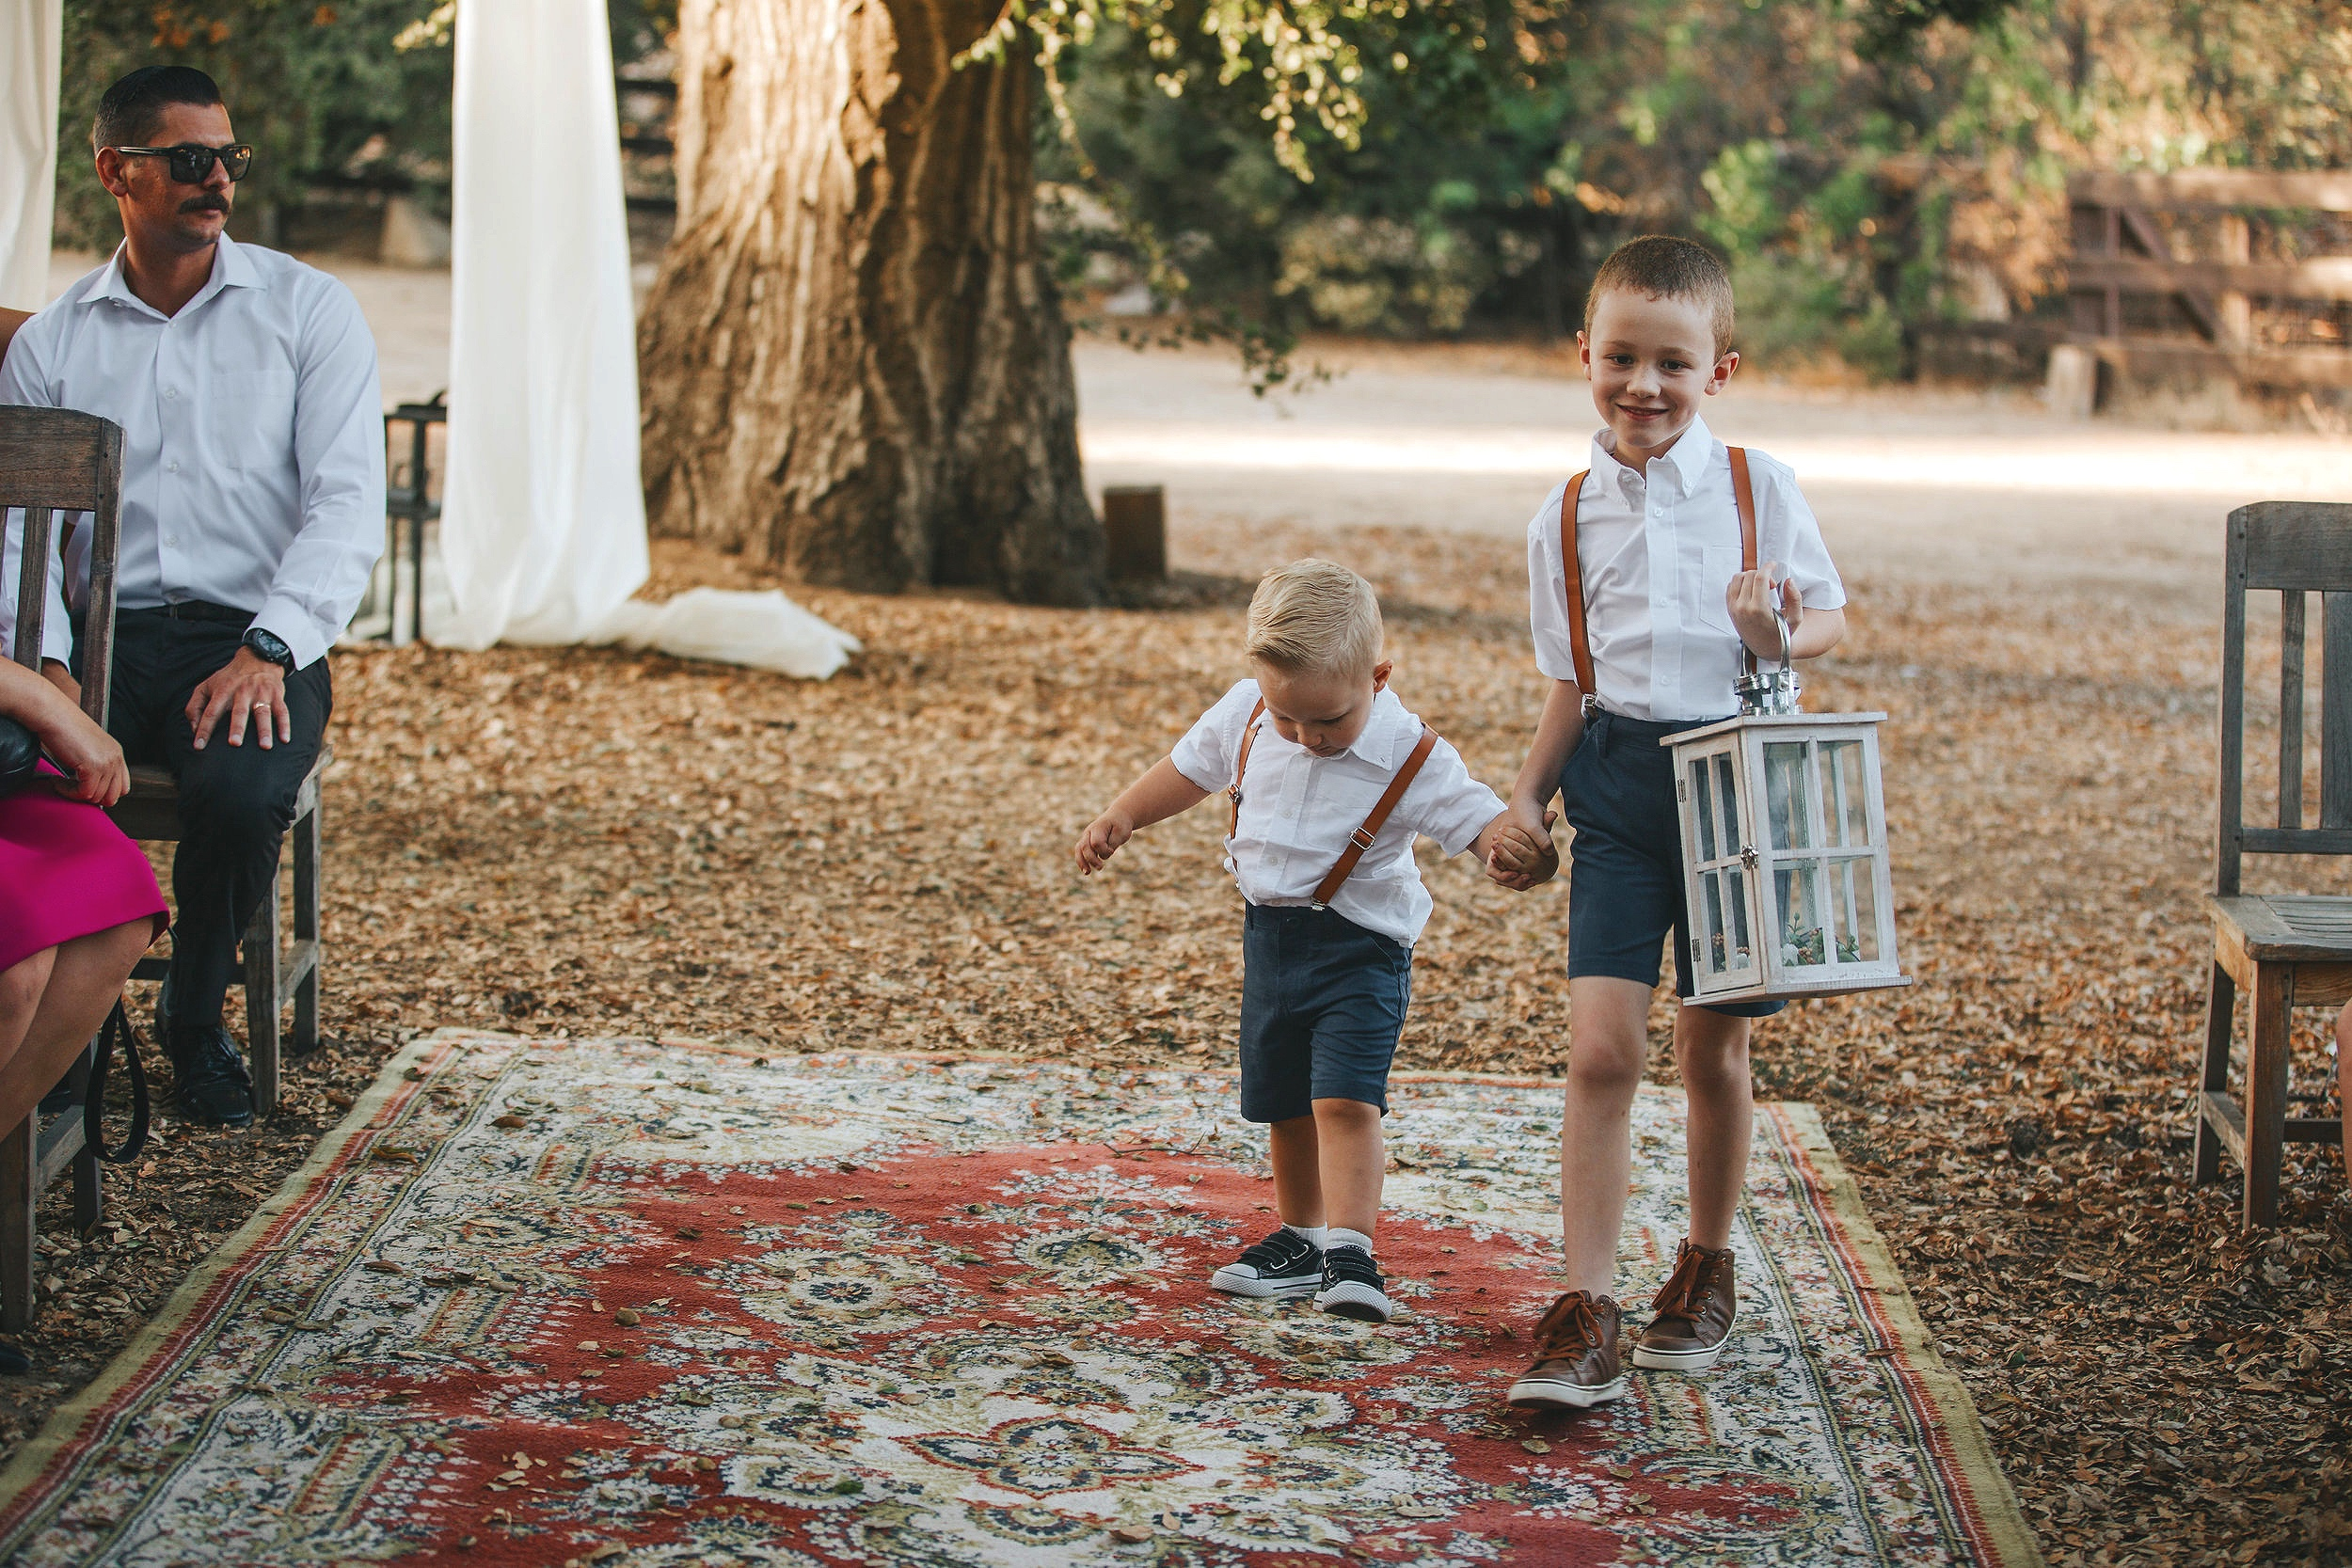 Walking down a wedding aisle of rugs, these cute ring bearers are having loads of fun. wedding at Chateau Adare in the Temecula Valley.